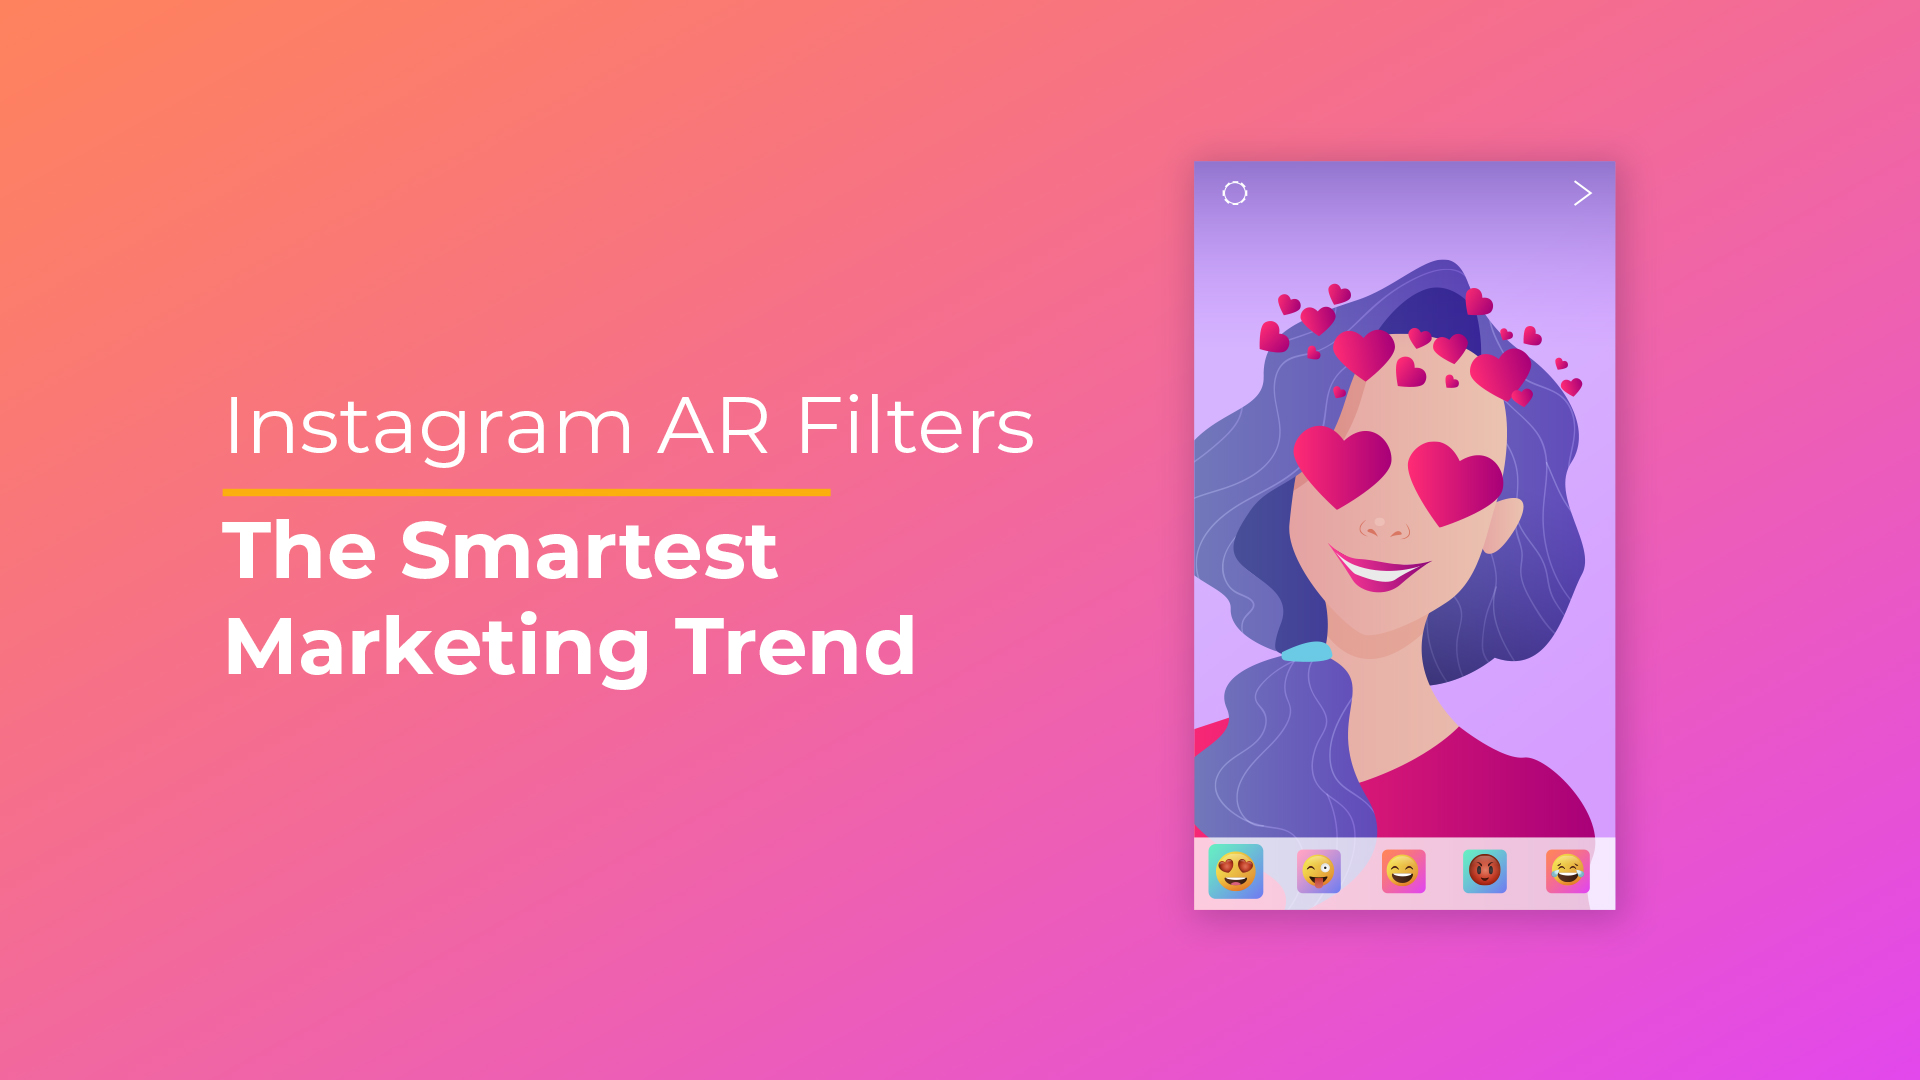 Instagram AR Filters - The Smartest Marketing Trend